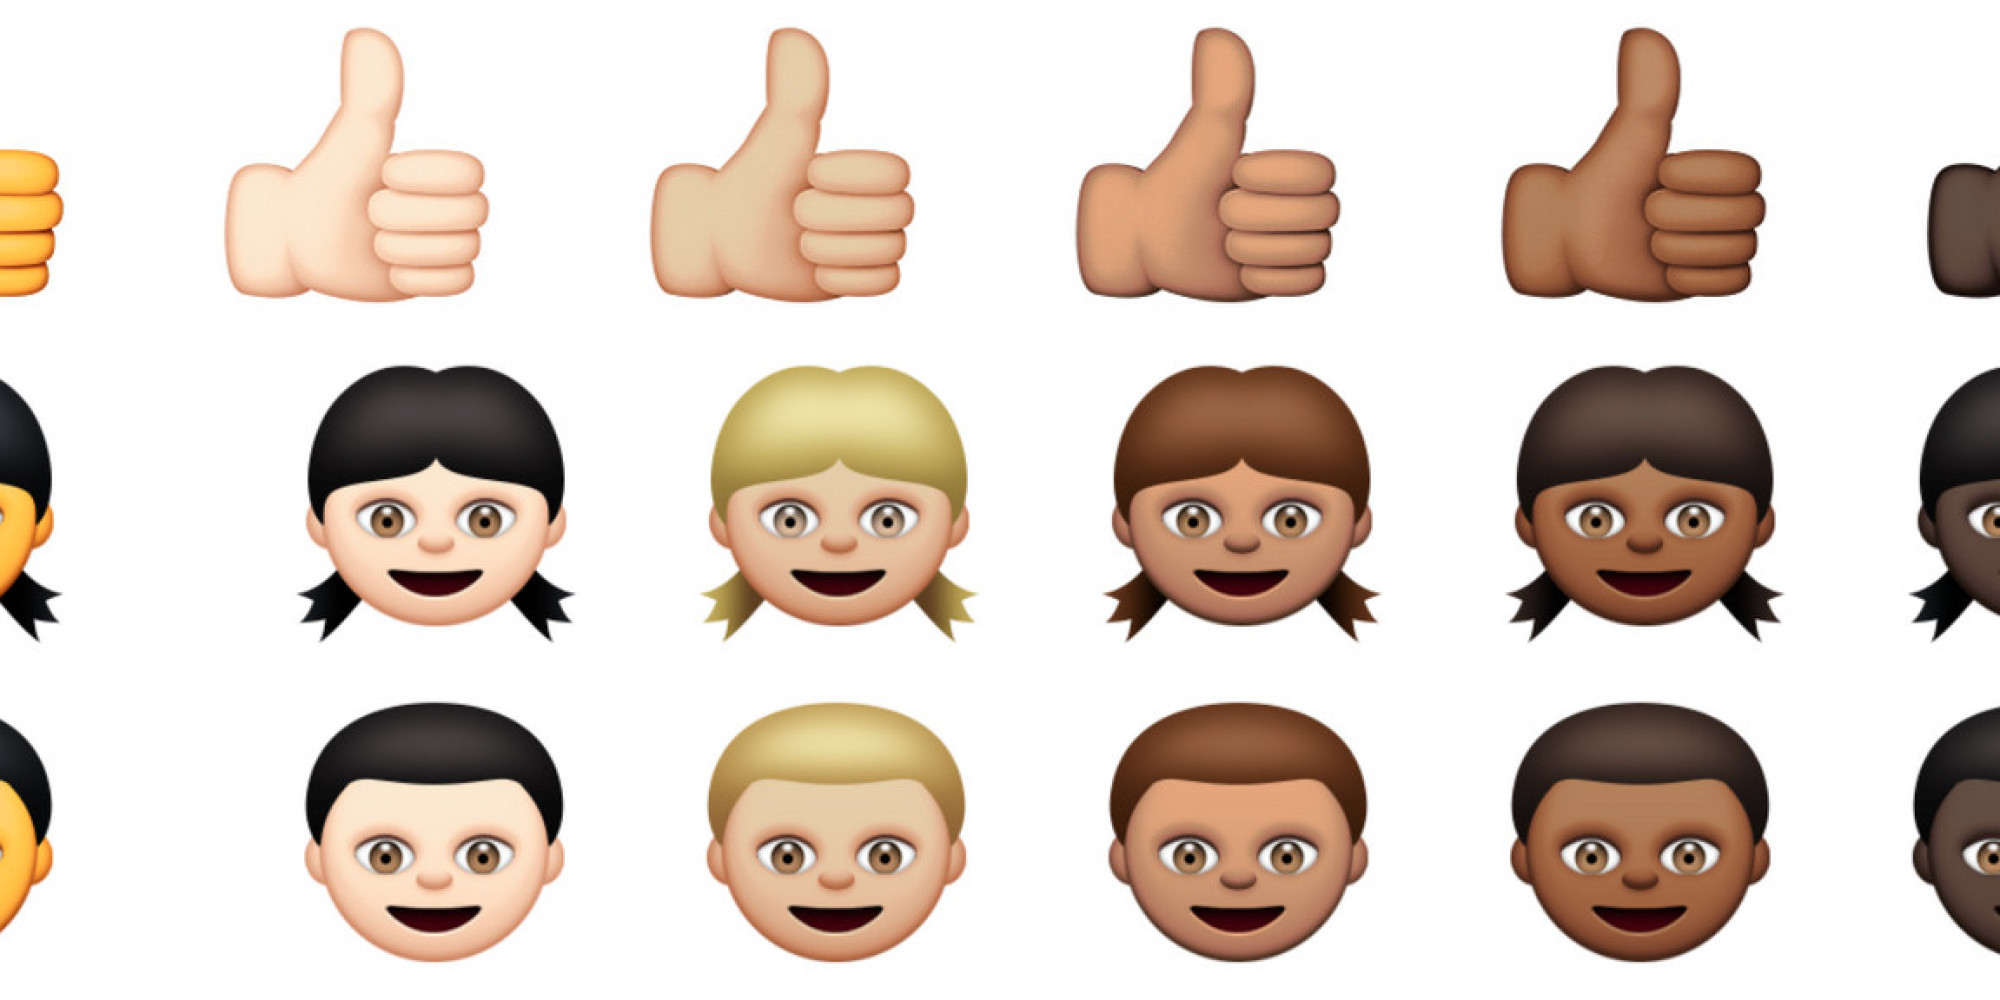 new emojis for iphone apple launches racially diverse emoji with new ios update 15745